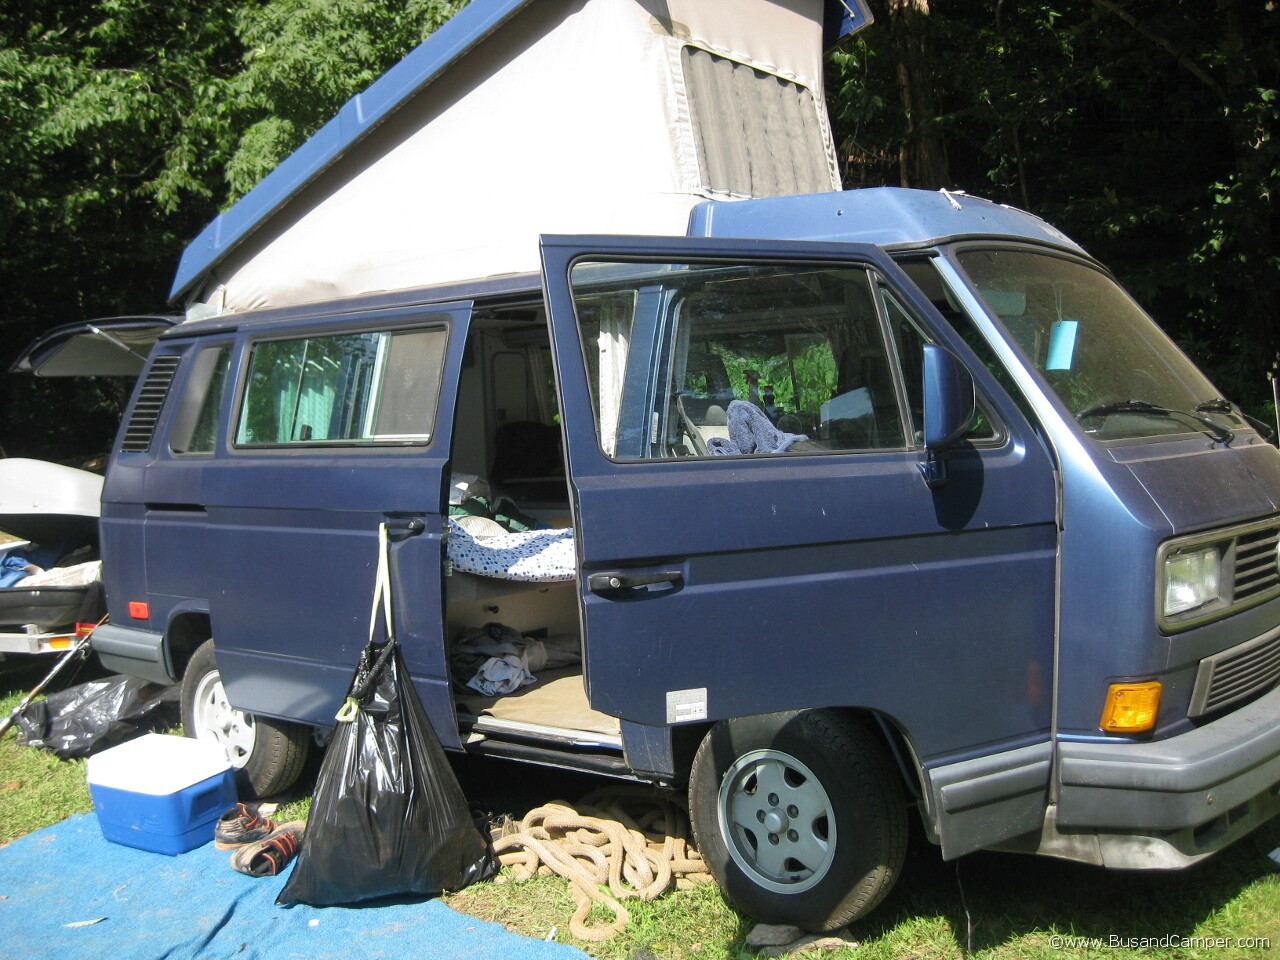 Lived in VW Camper